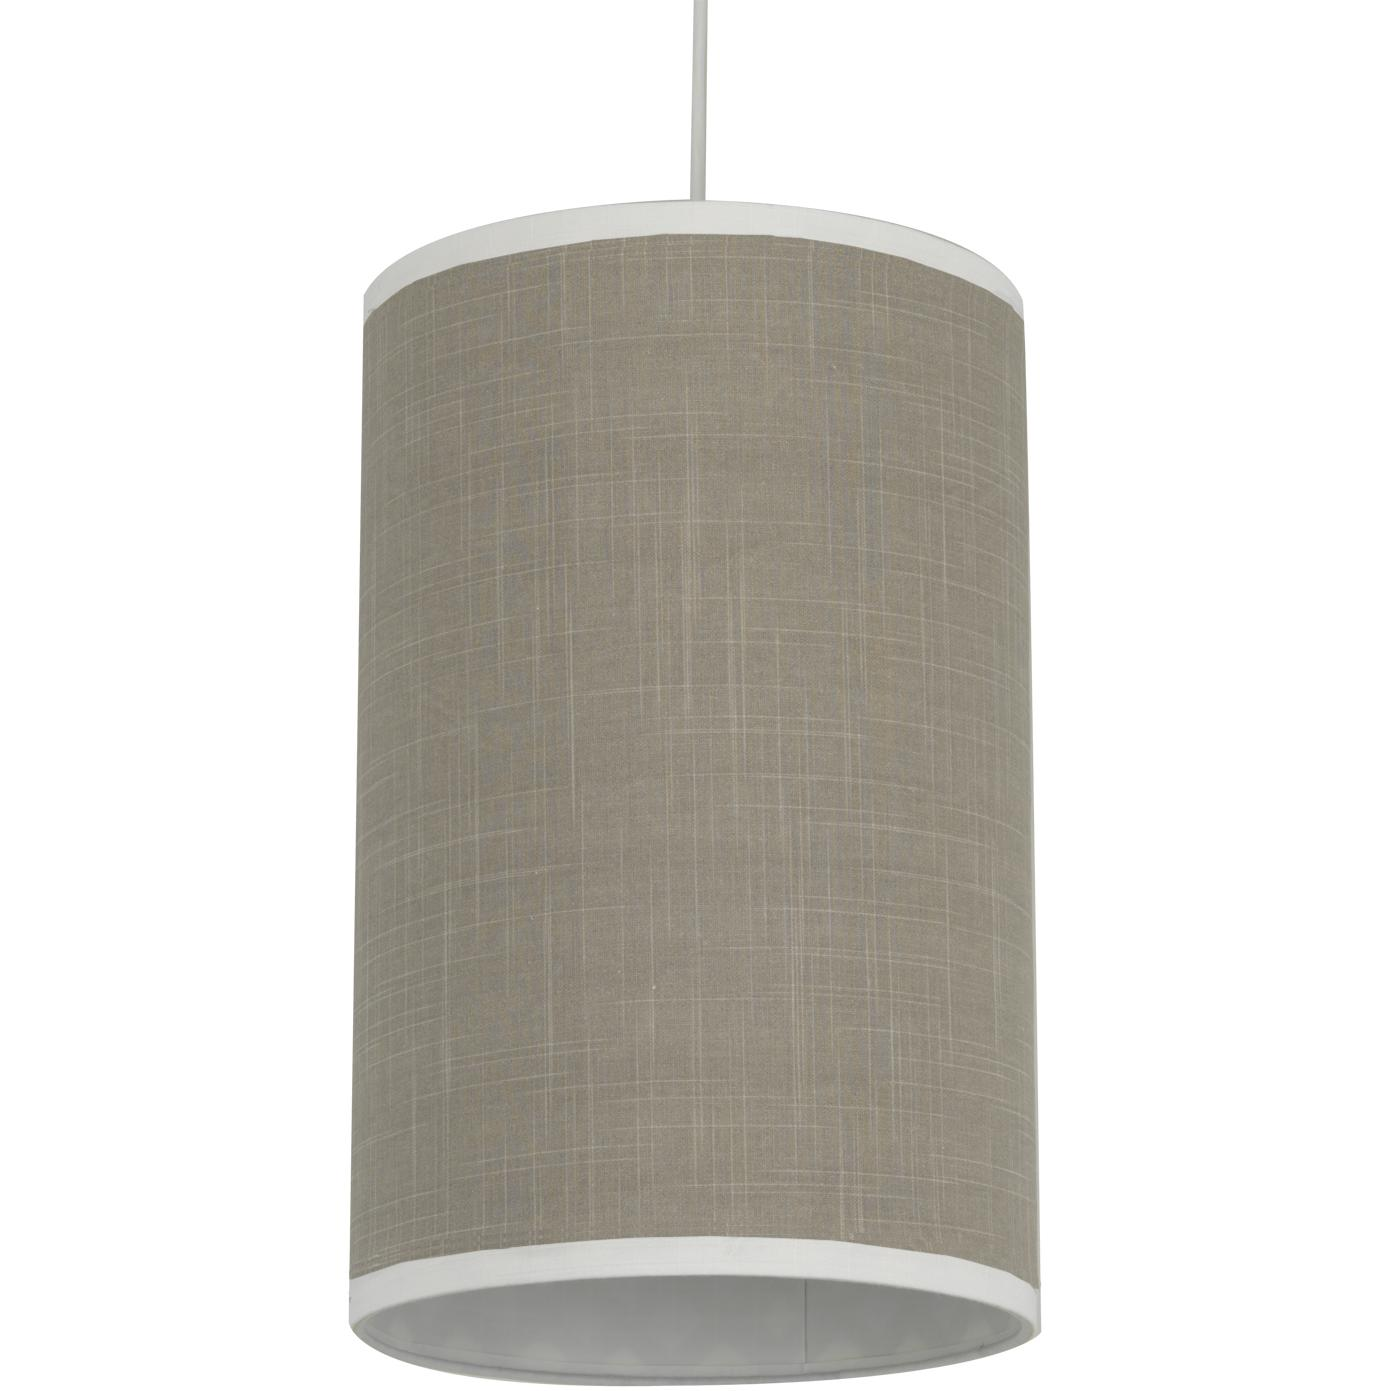 Oilo Cylinder Hanging Lamp - Cobblestone Taupe Solid